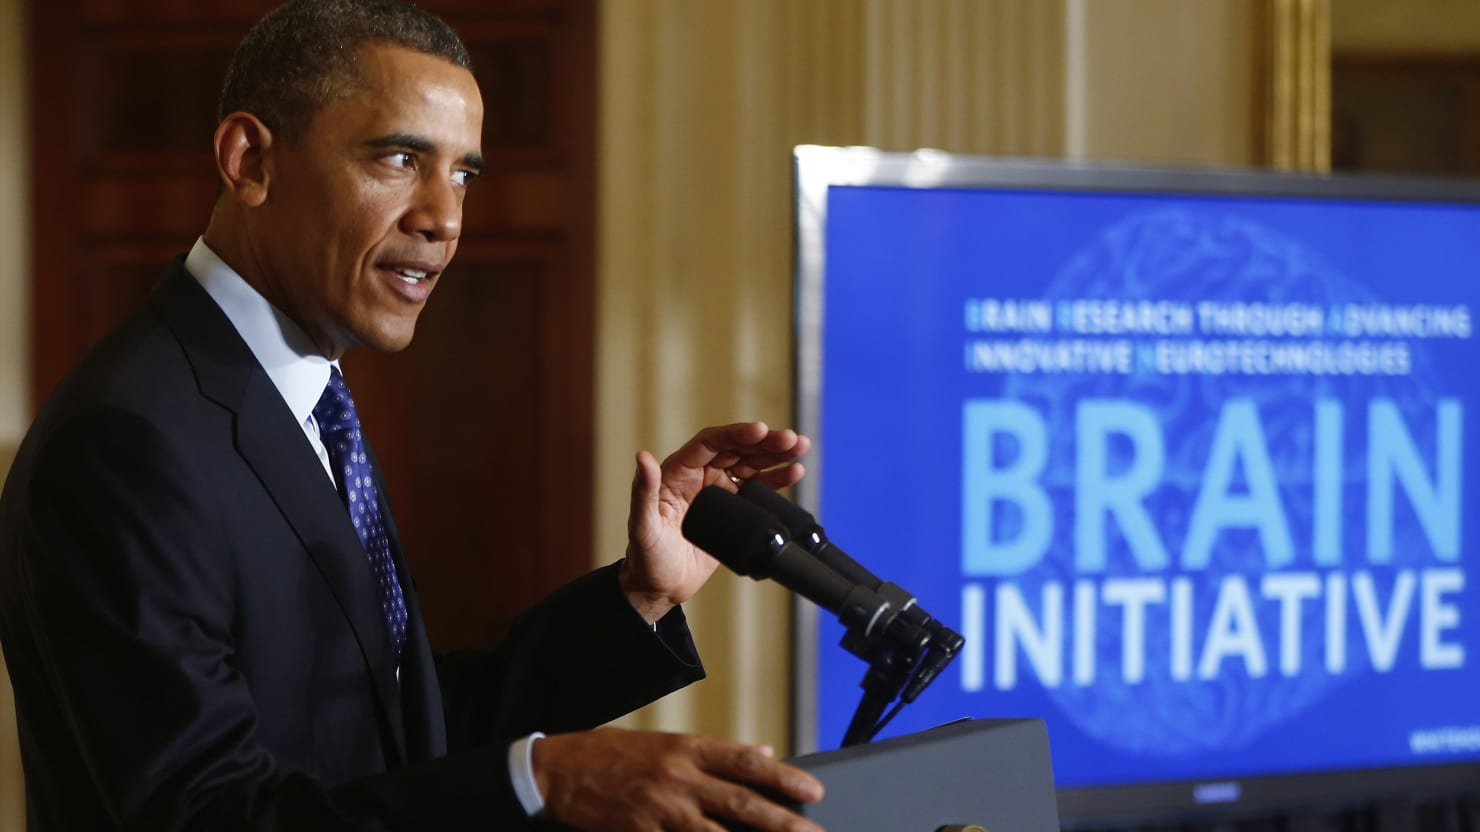 Obama Launches BRAIN Initiative to Map the Human Brain